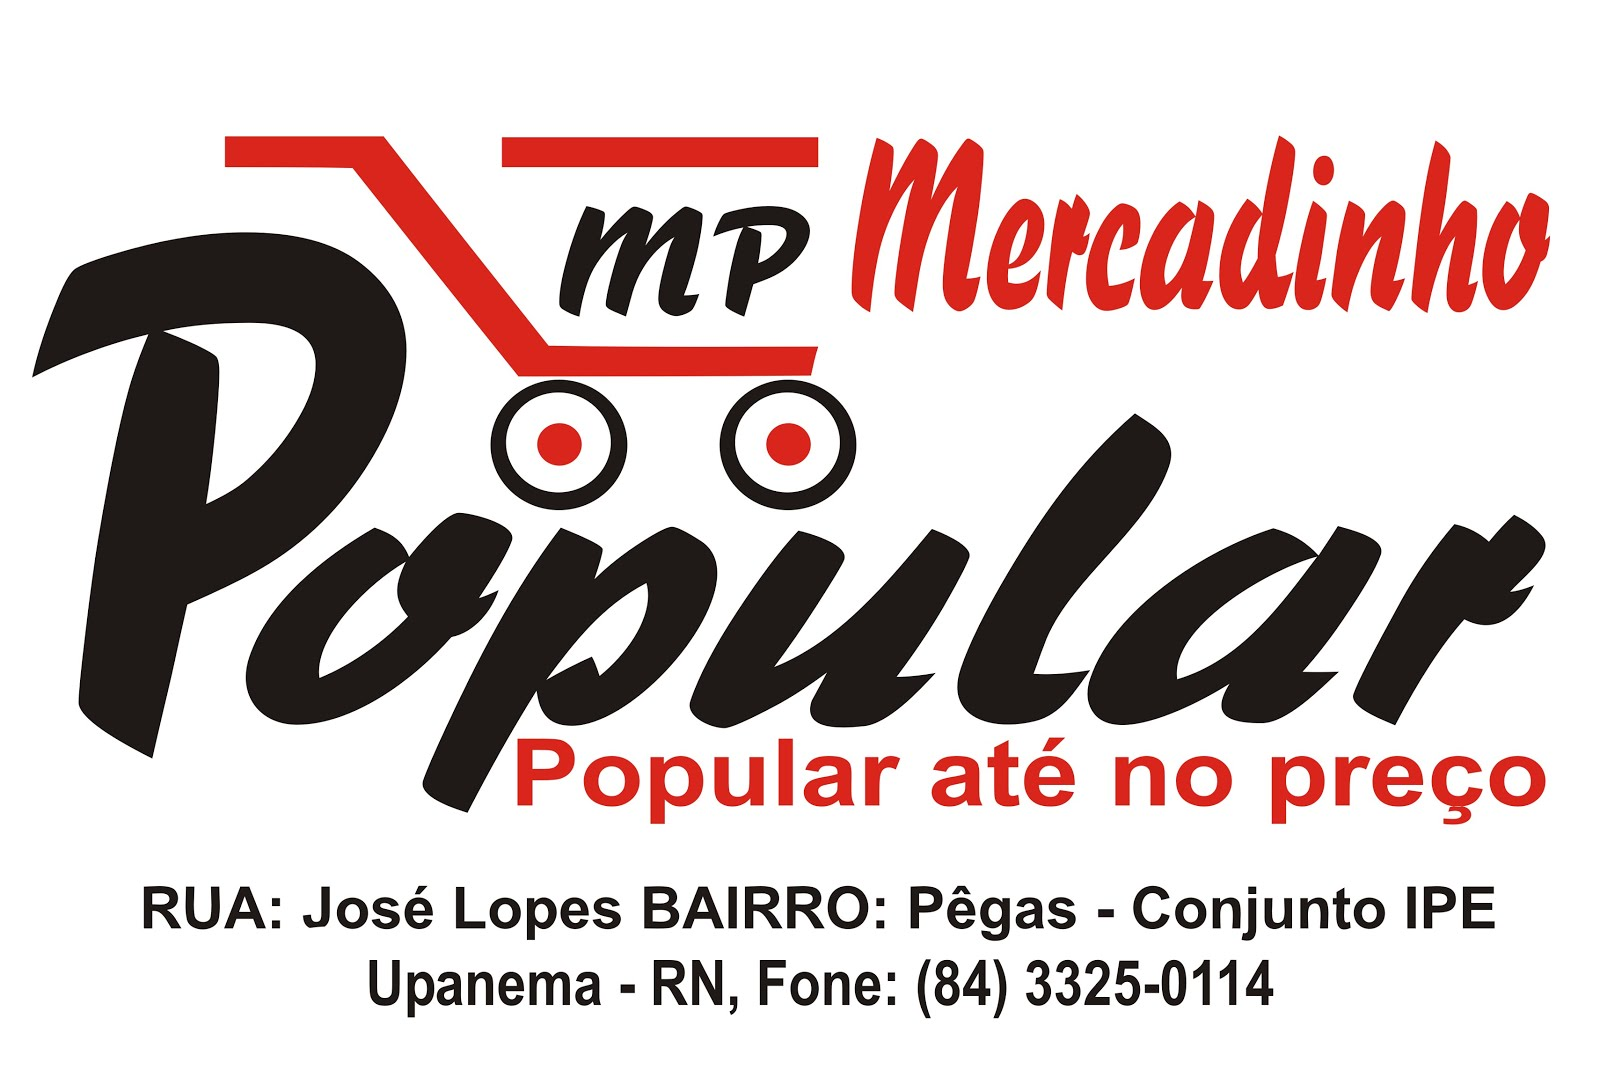 MERCADINHO POPULAR